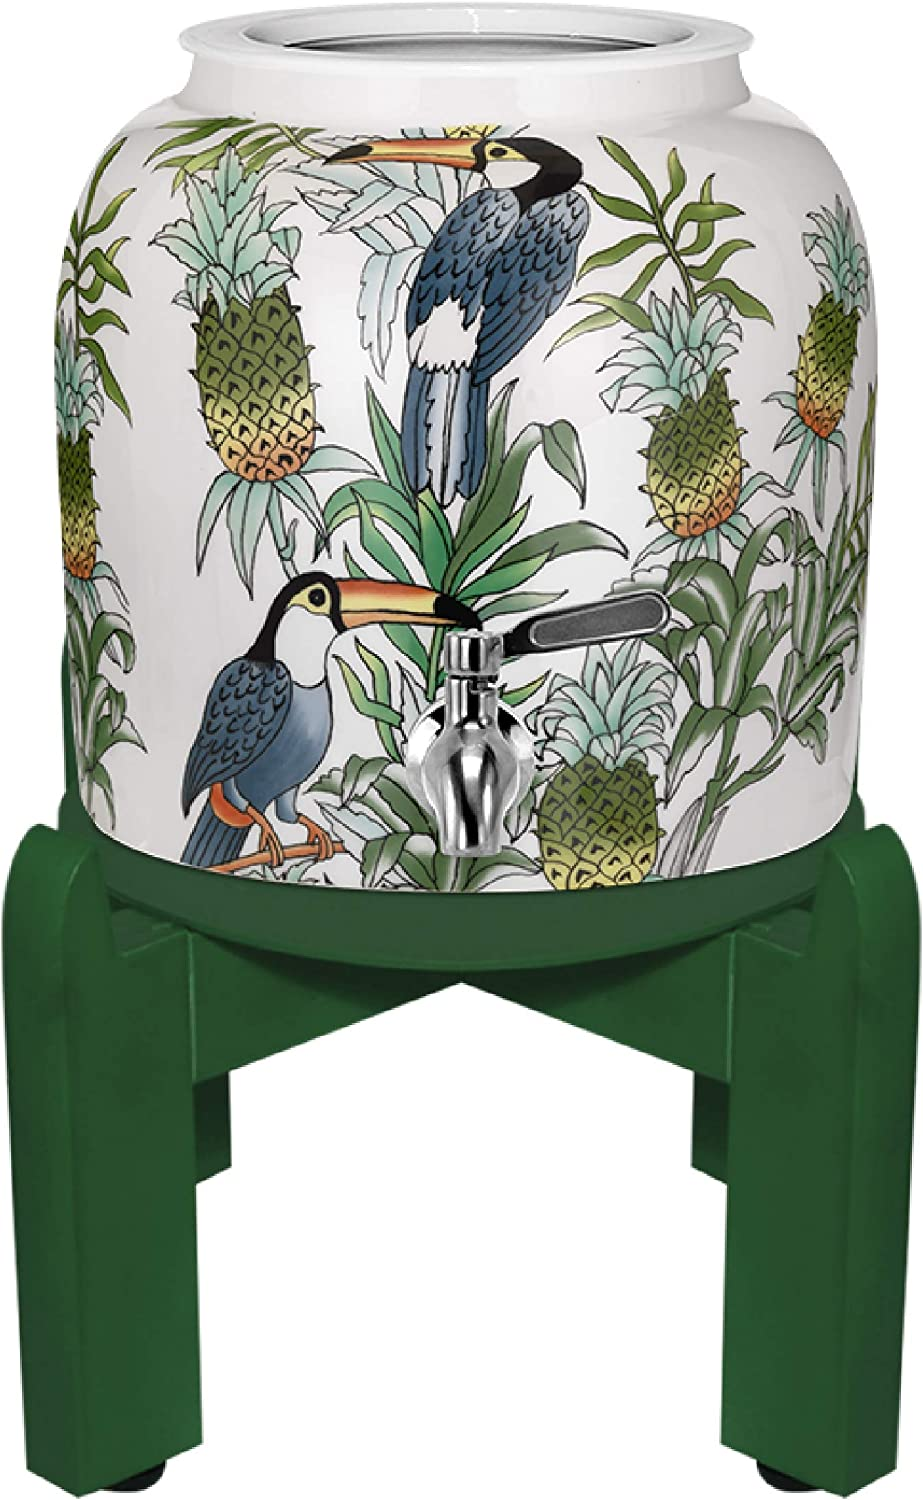 Geo Premium Porcelain Crock Water Dispenser (Nature Series) w/8 Inch Wood Stand, Ceramic Lid, Stainless Steel Spigot Included (Pineapple and Toucan Design)